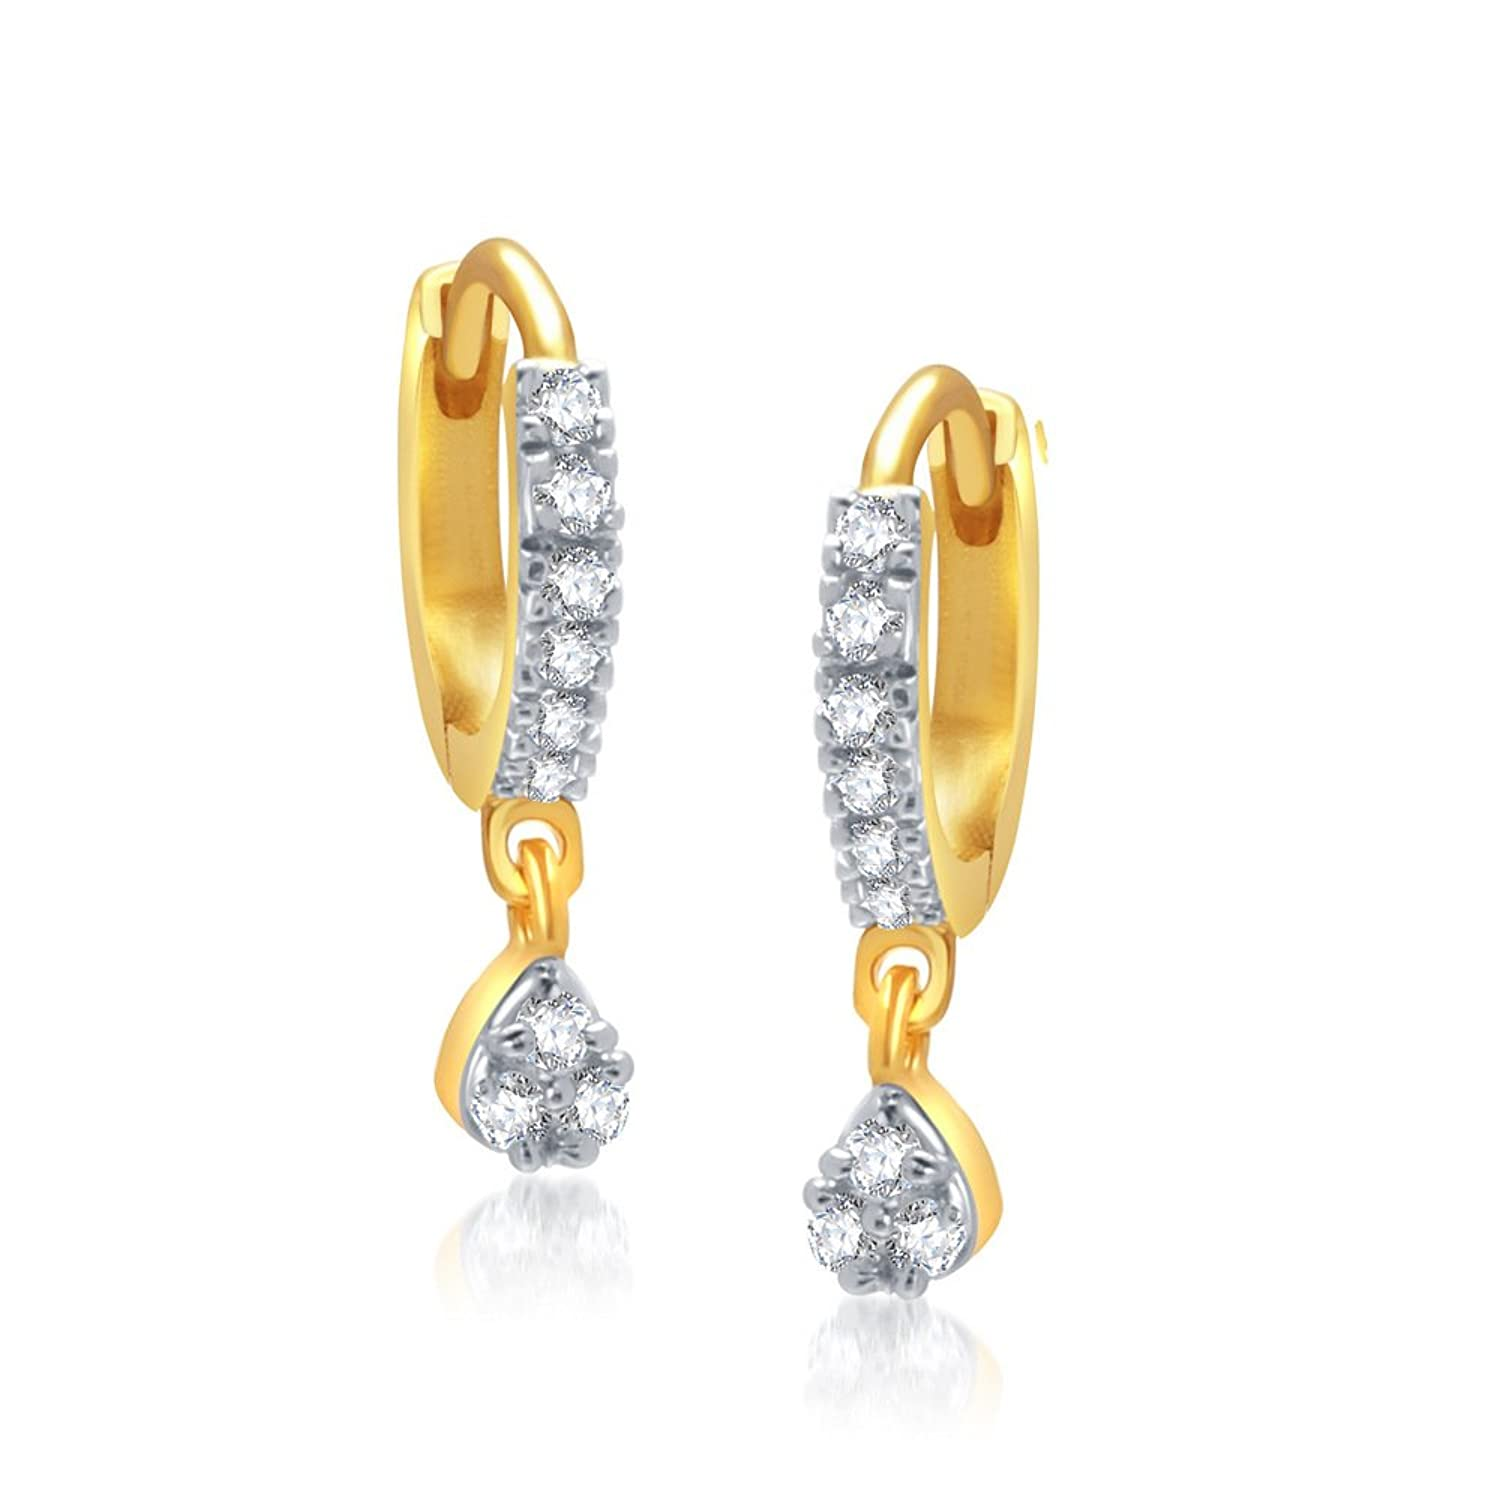 the jewellery buy rich pearl wear daily earrings online diamond india earring casual carat